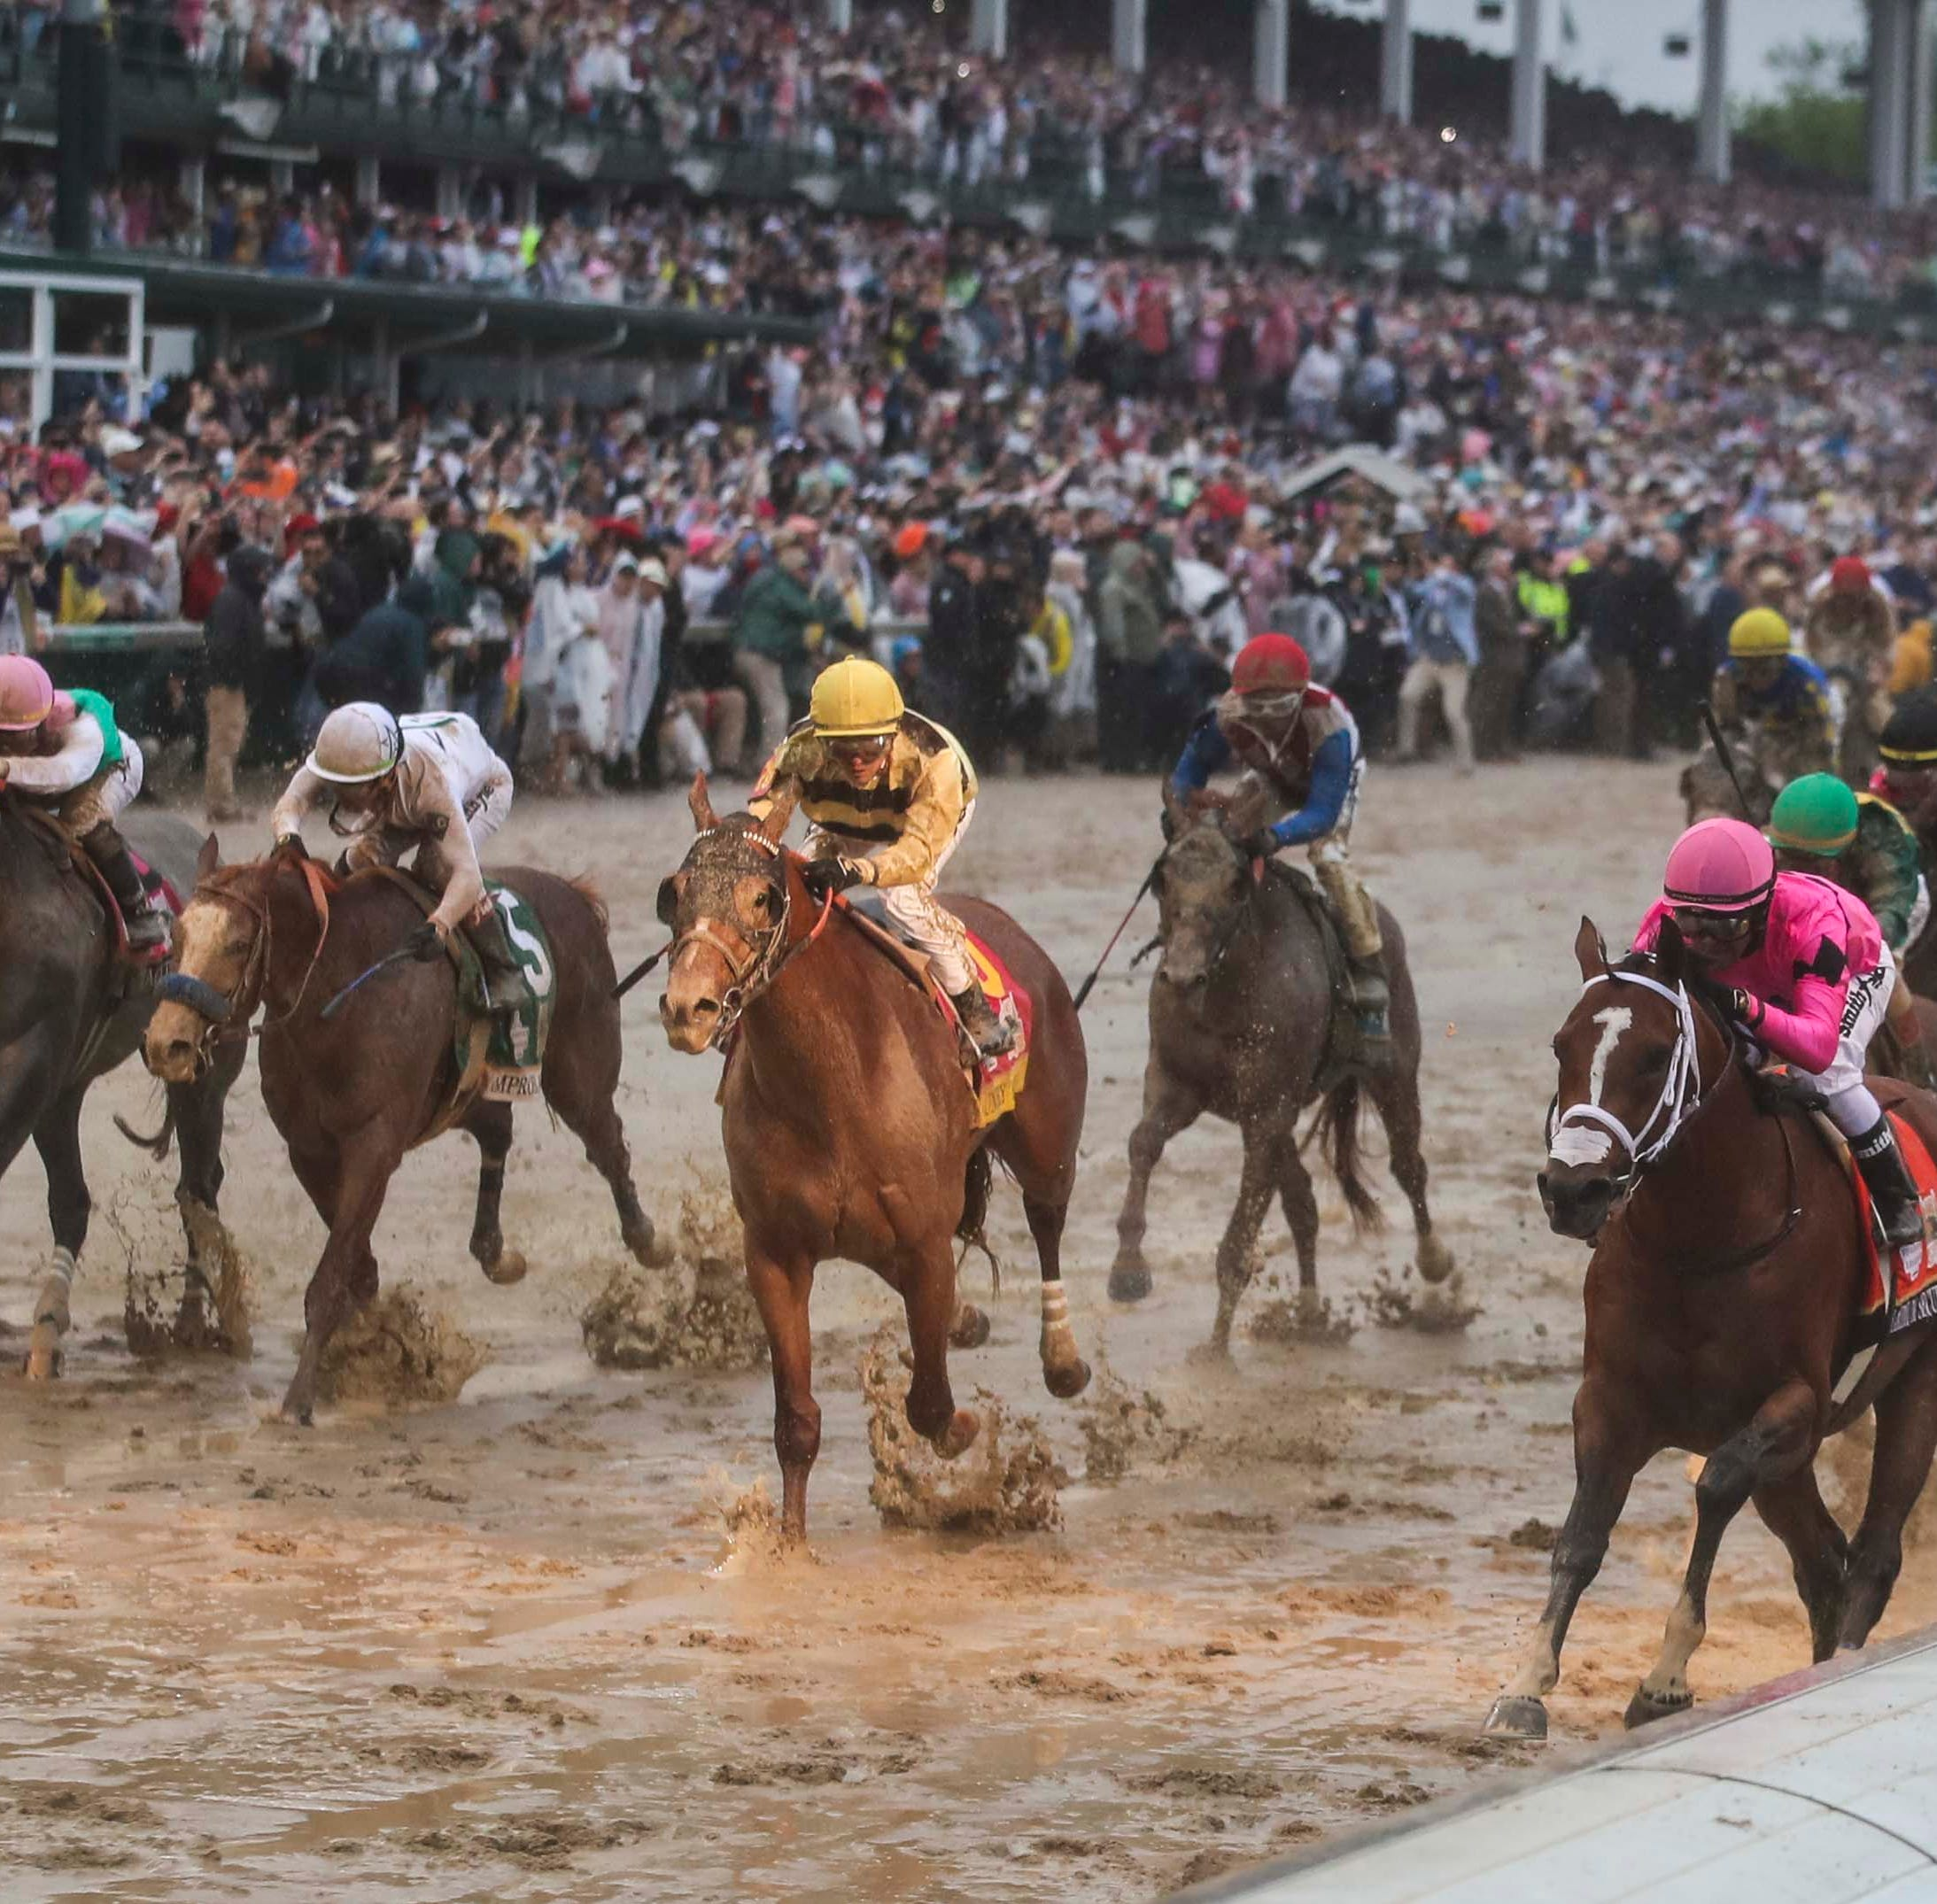 With historic disqualification, NBC's Kentucky Derby coverage gets real after being ridiculous